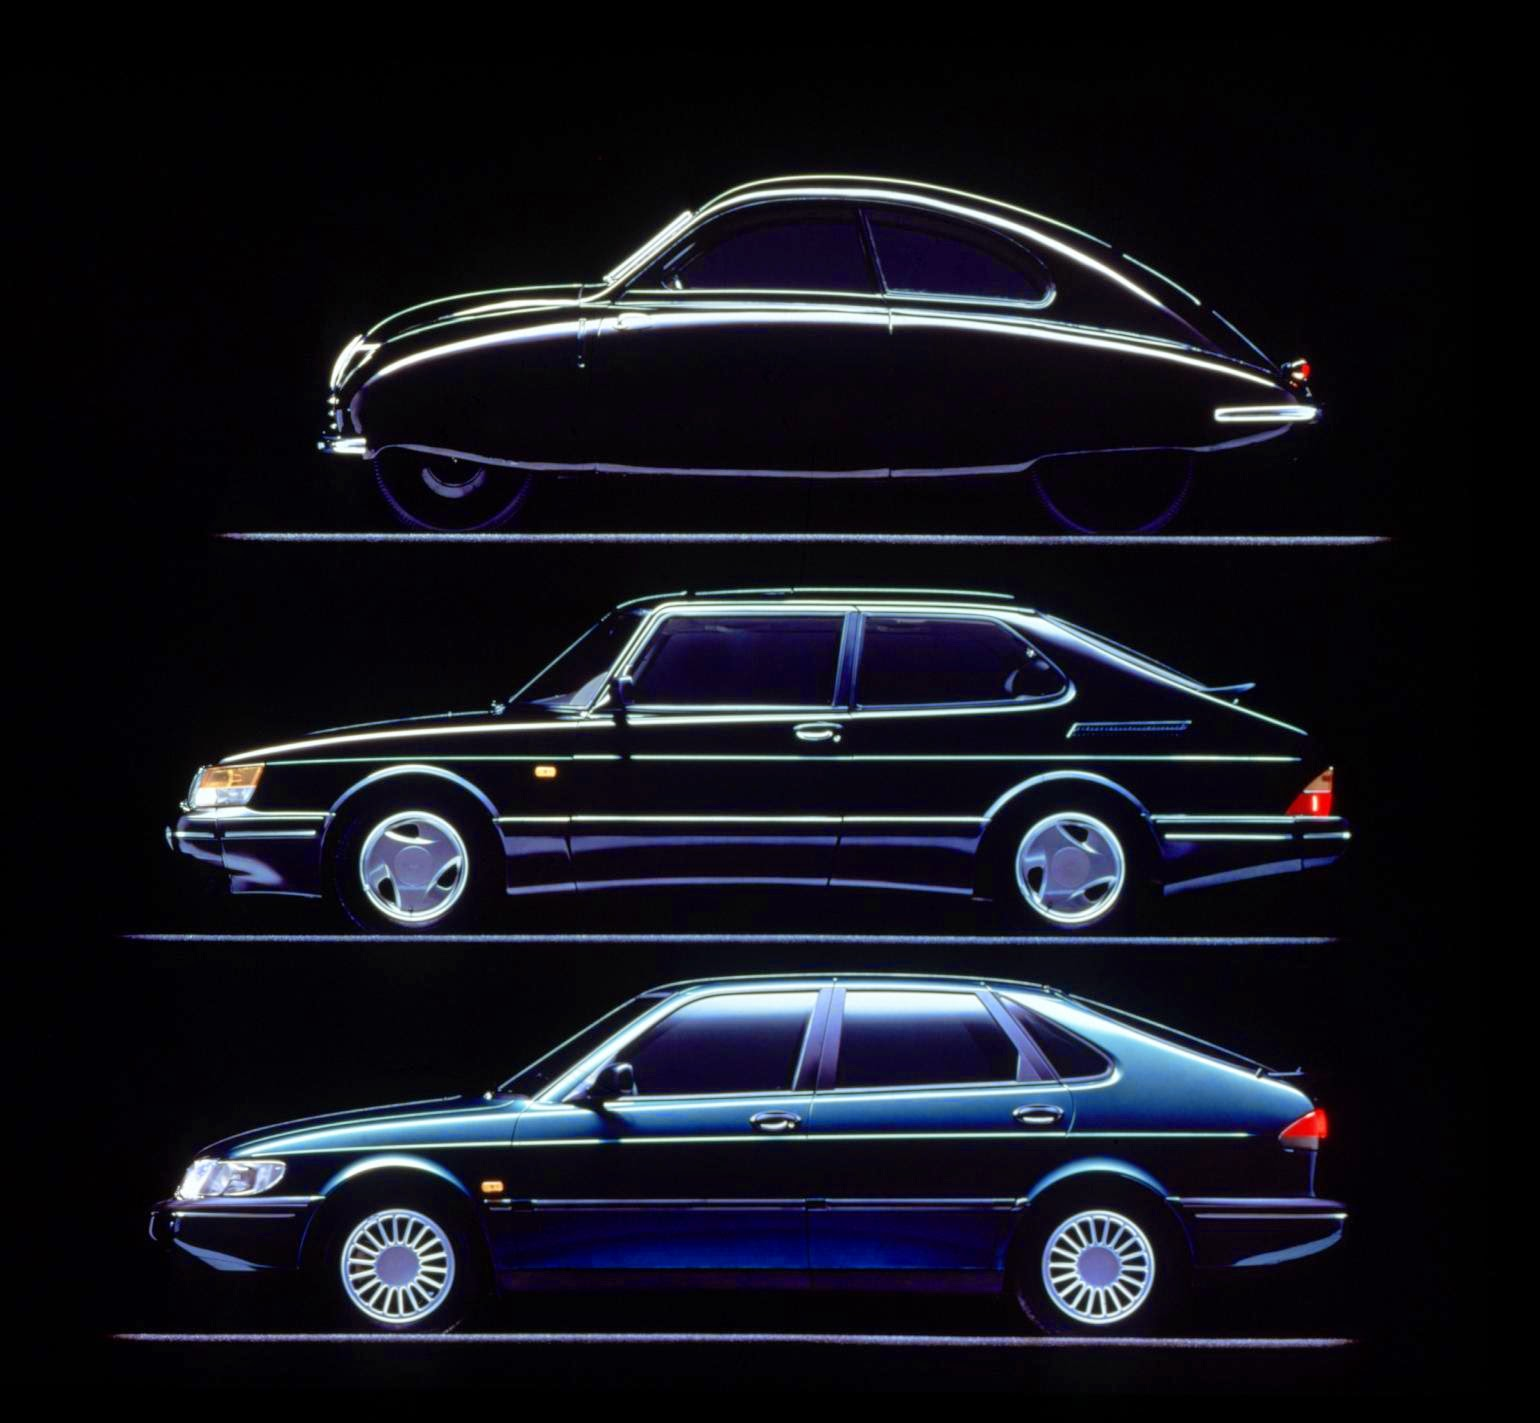 Saab 900 design evolution